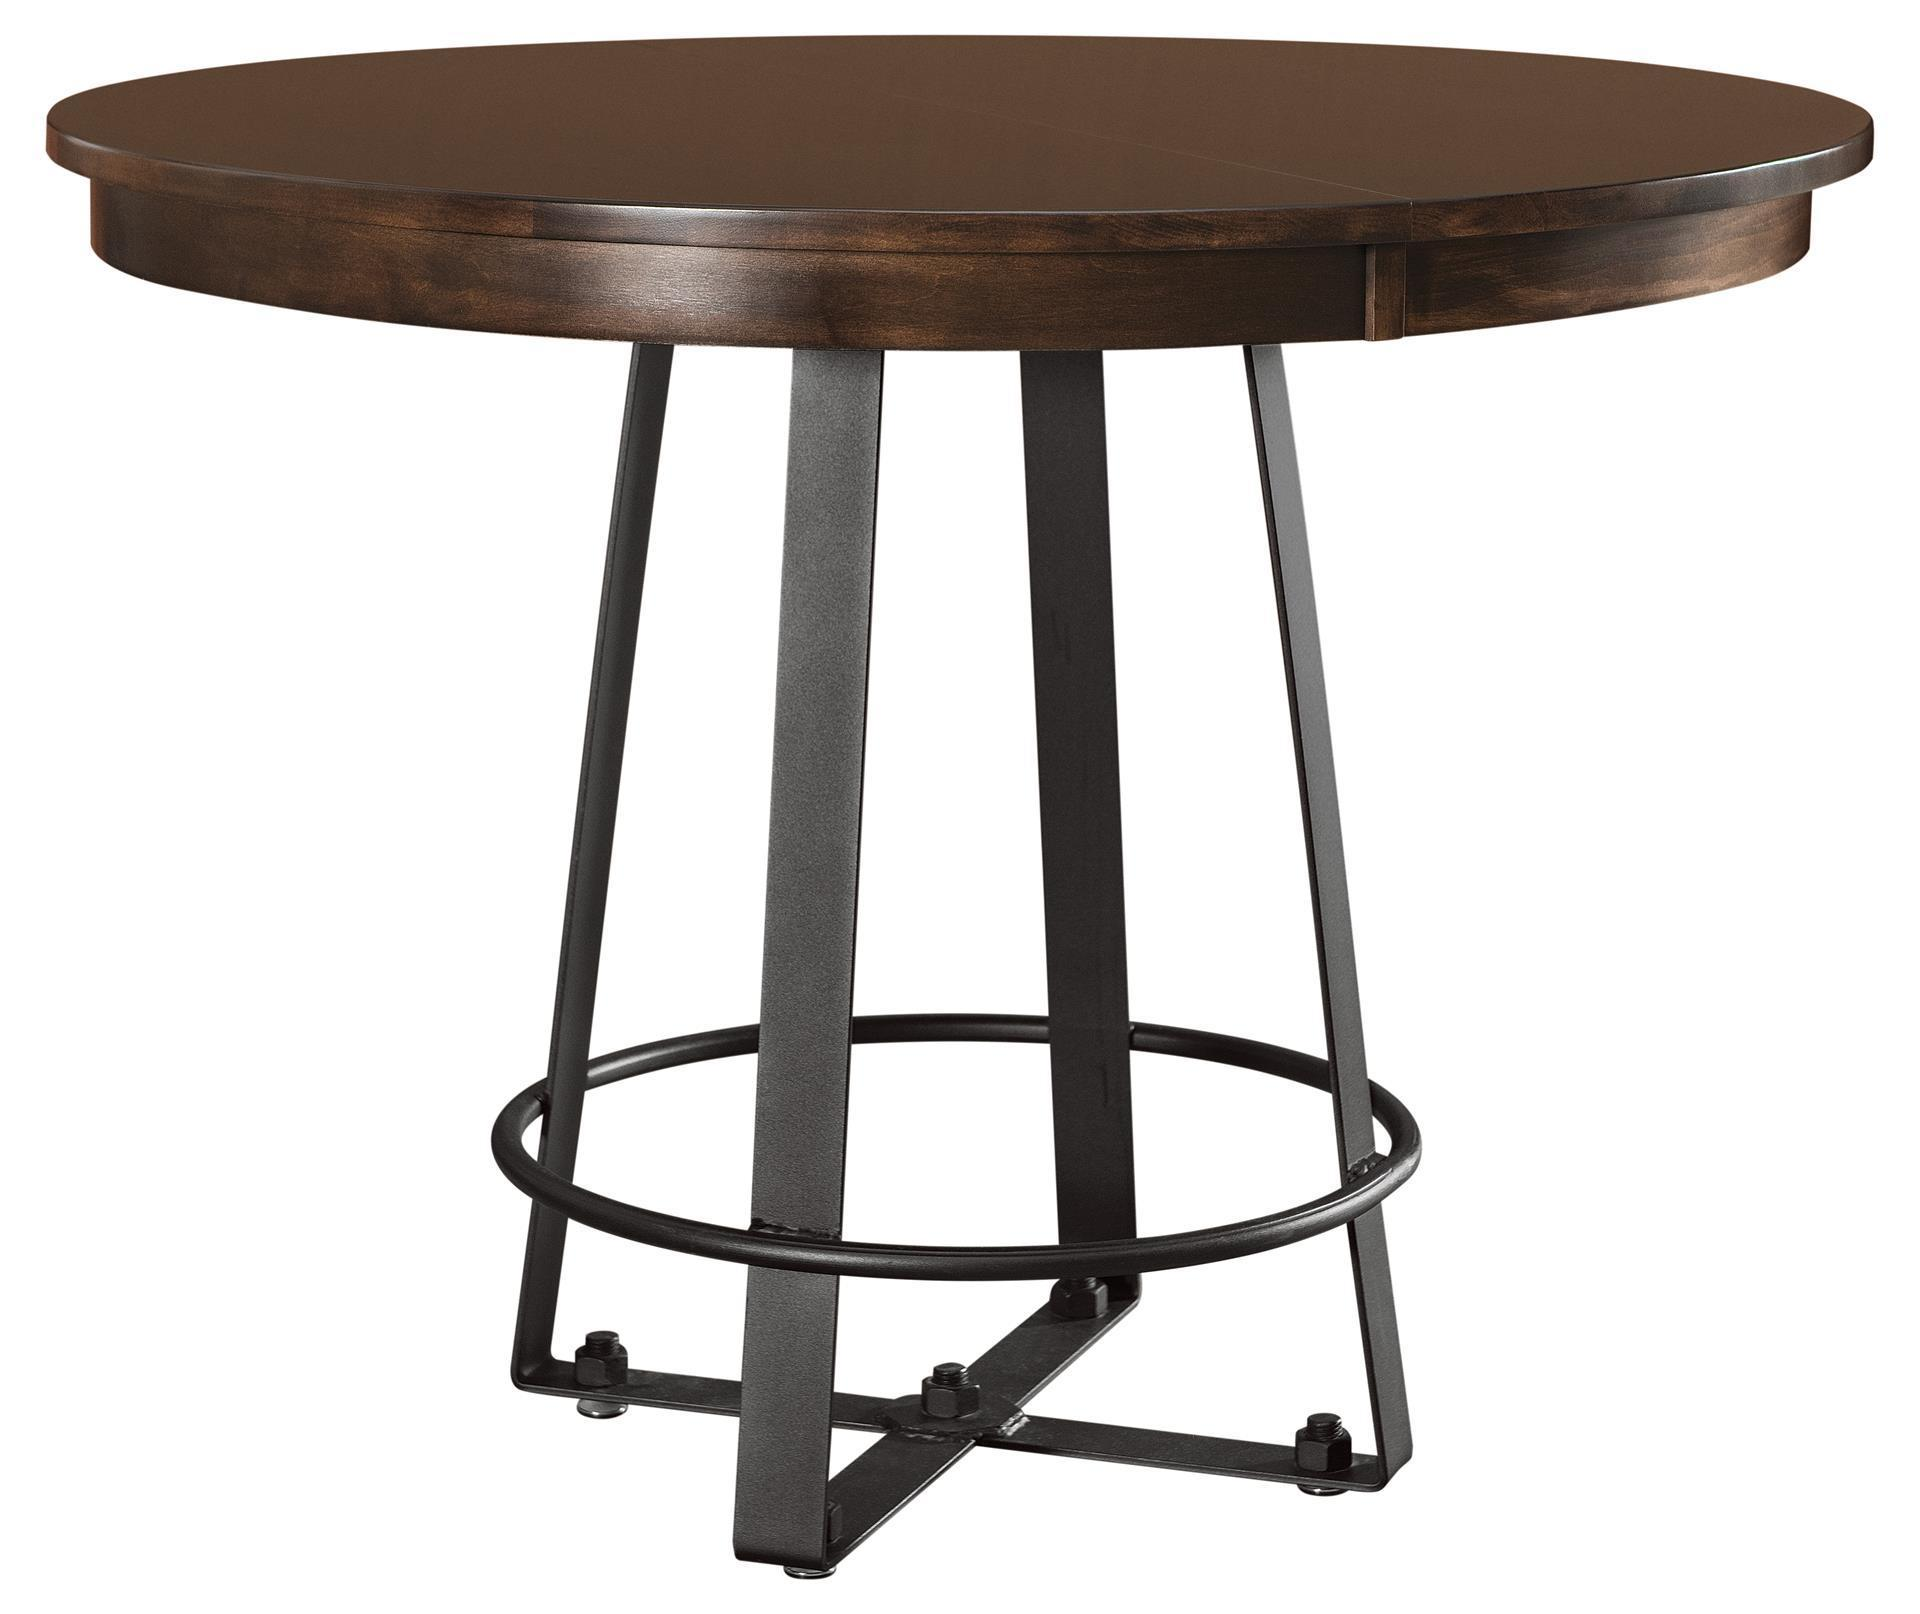 Iron Craft Round Dining Table From Dutchcrafters Amish Furniture